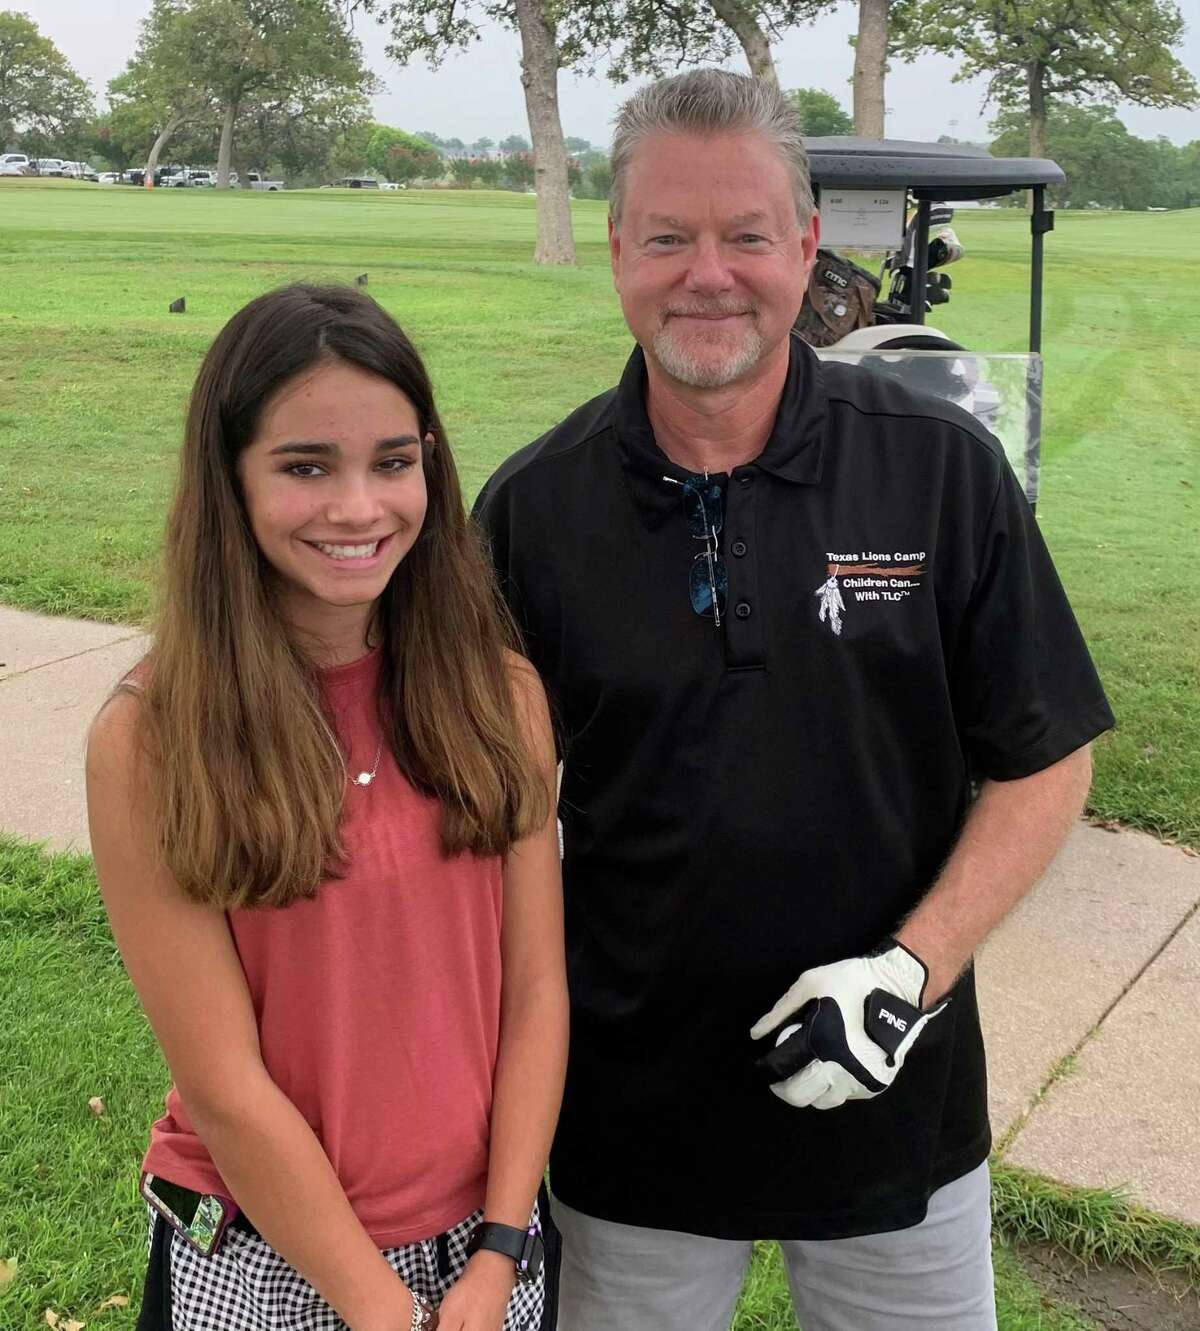 The Conroe Noon Lions Club is proud to announce Lion Wes Carr as the 2021-2022 Texas Lions Camp Chairman of the Board; only one other club member has served in this position in the camp's 70-plus years. Lion Wes is pictured here during the camp's annual golf tournament with the 2021 TLC Ambassador Camper Sofia Elder.